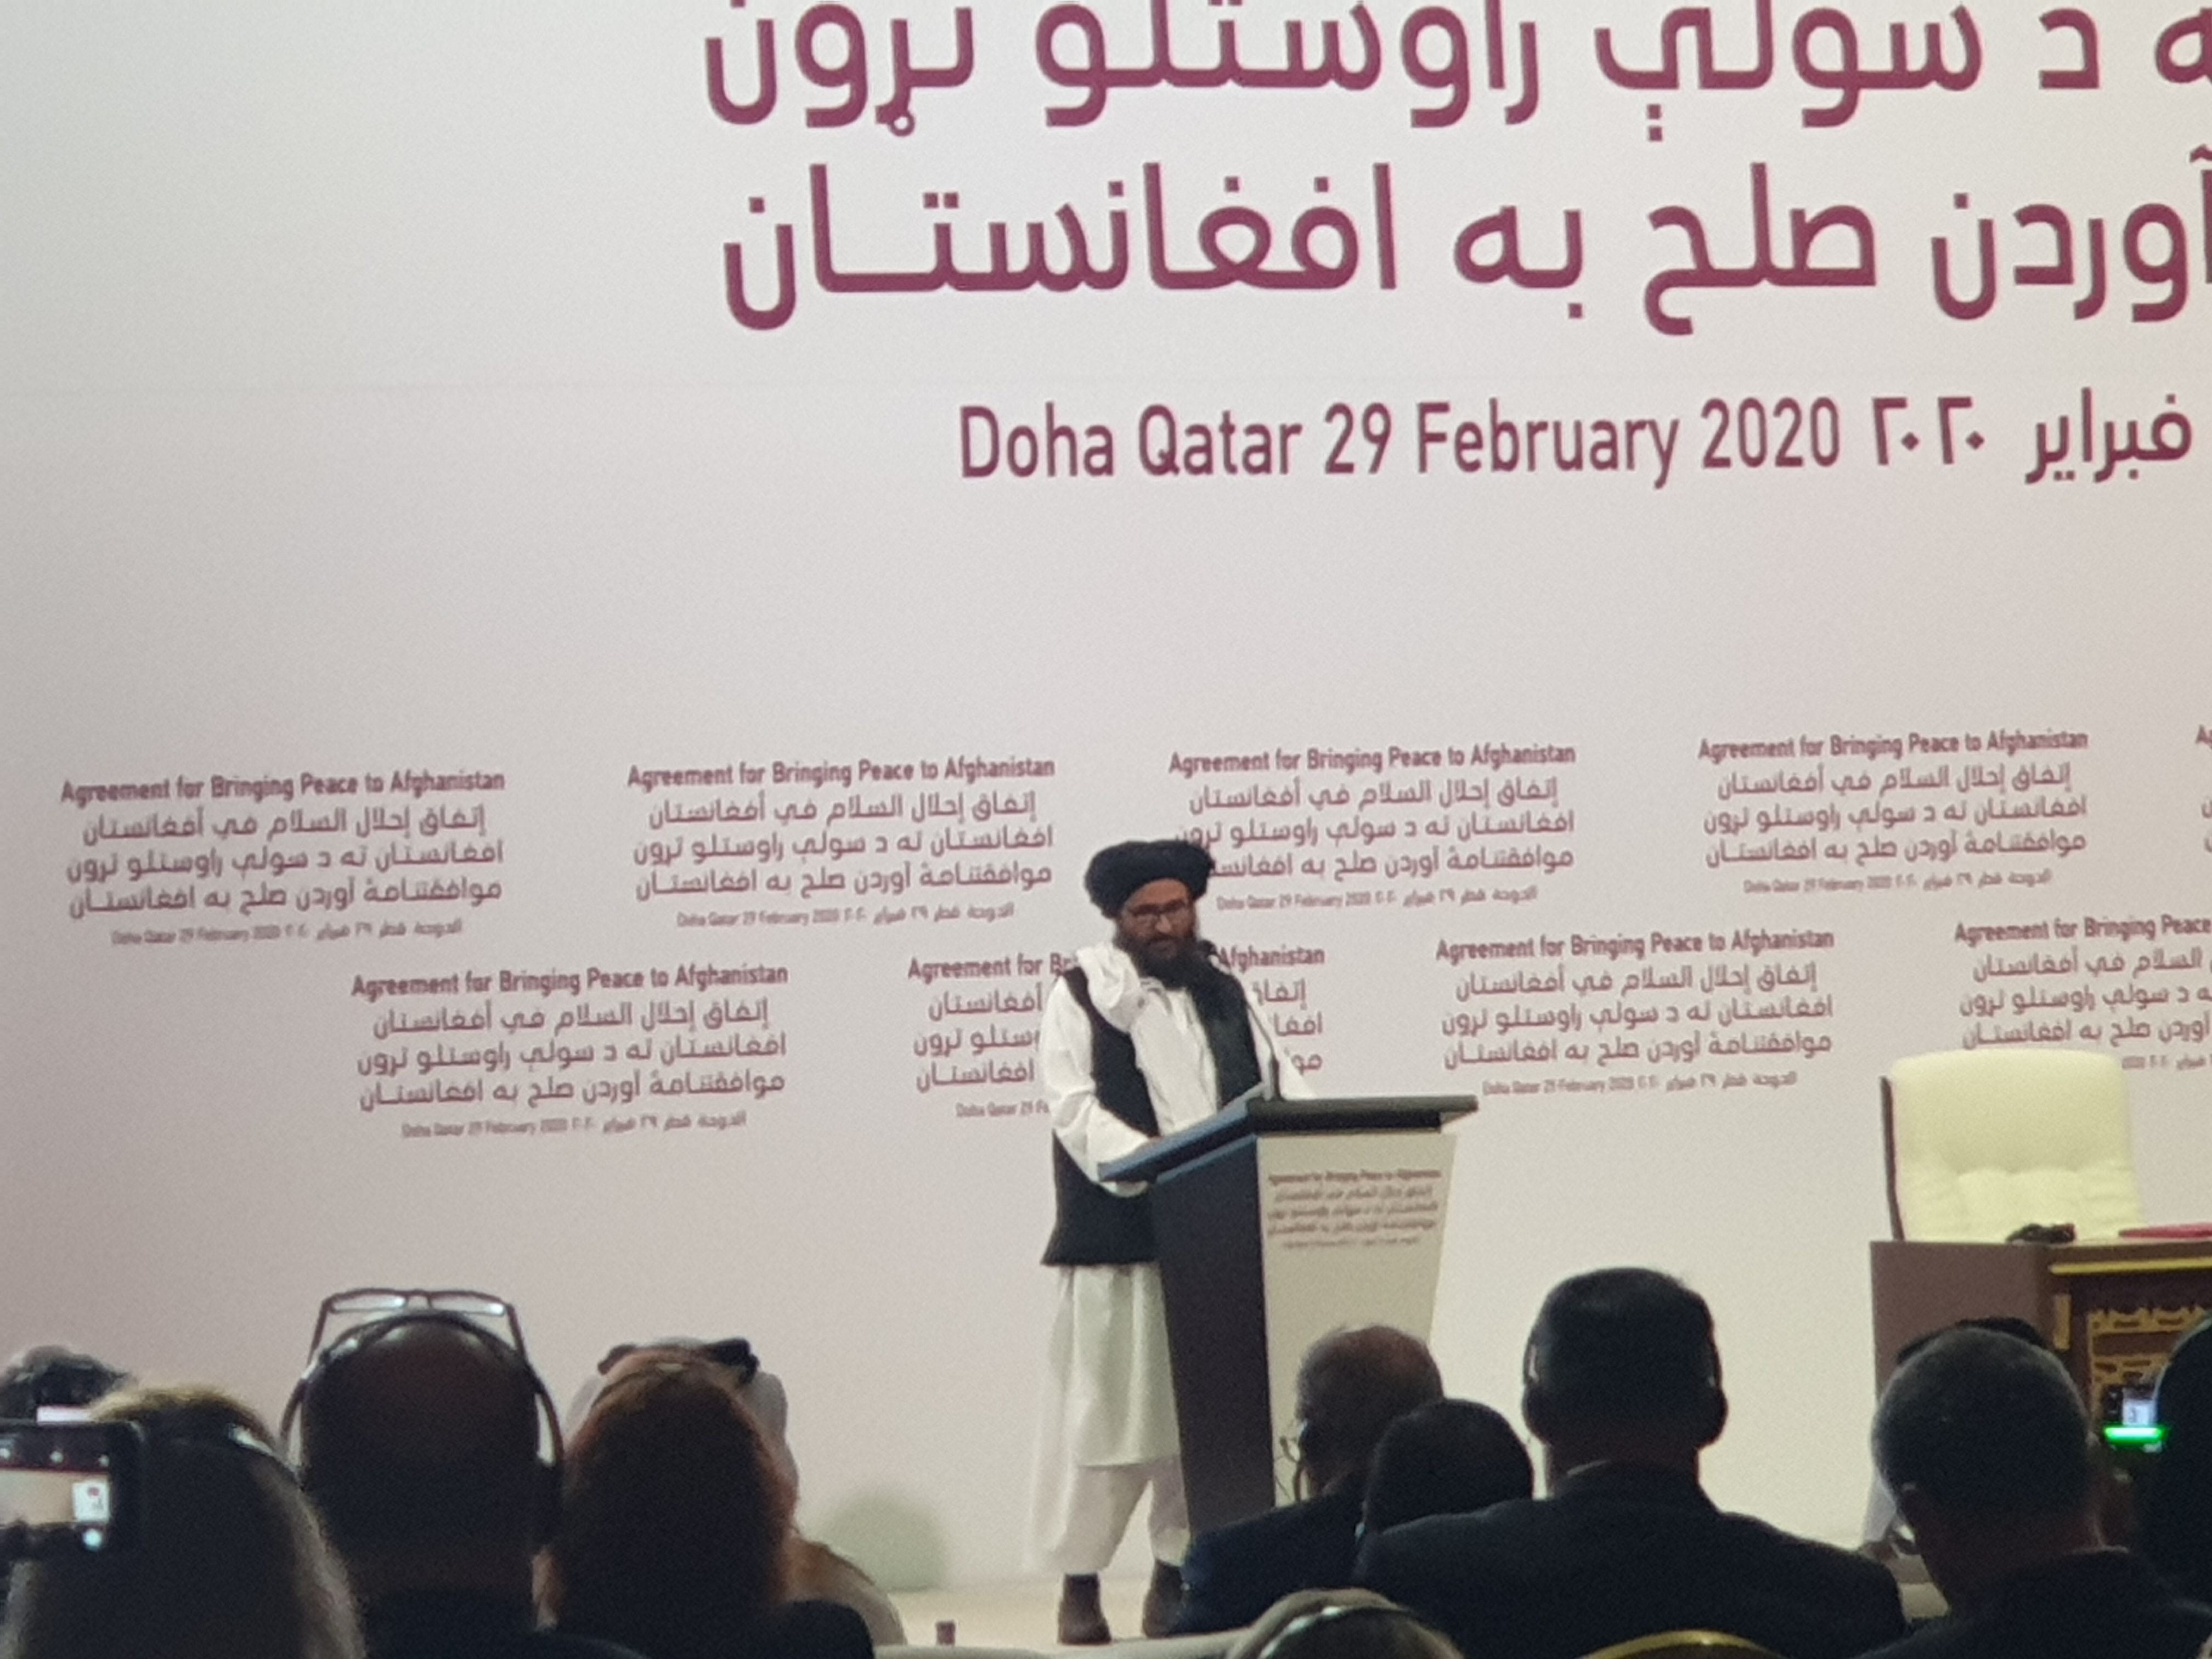 US-Taliban Sign Peace Deal in Doha, All Foreign Forces To Withdraw in 14 Months